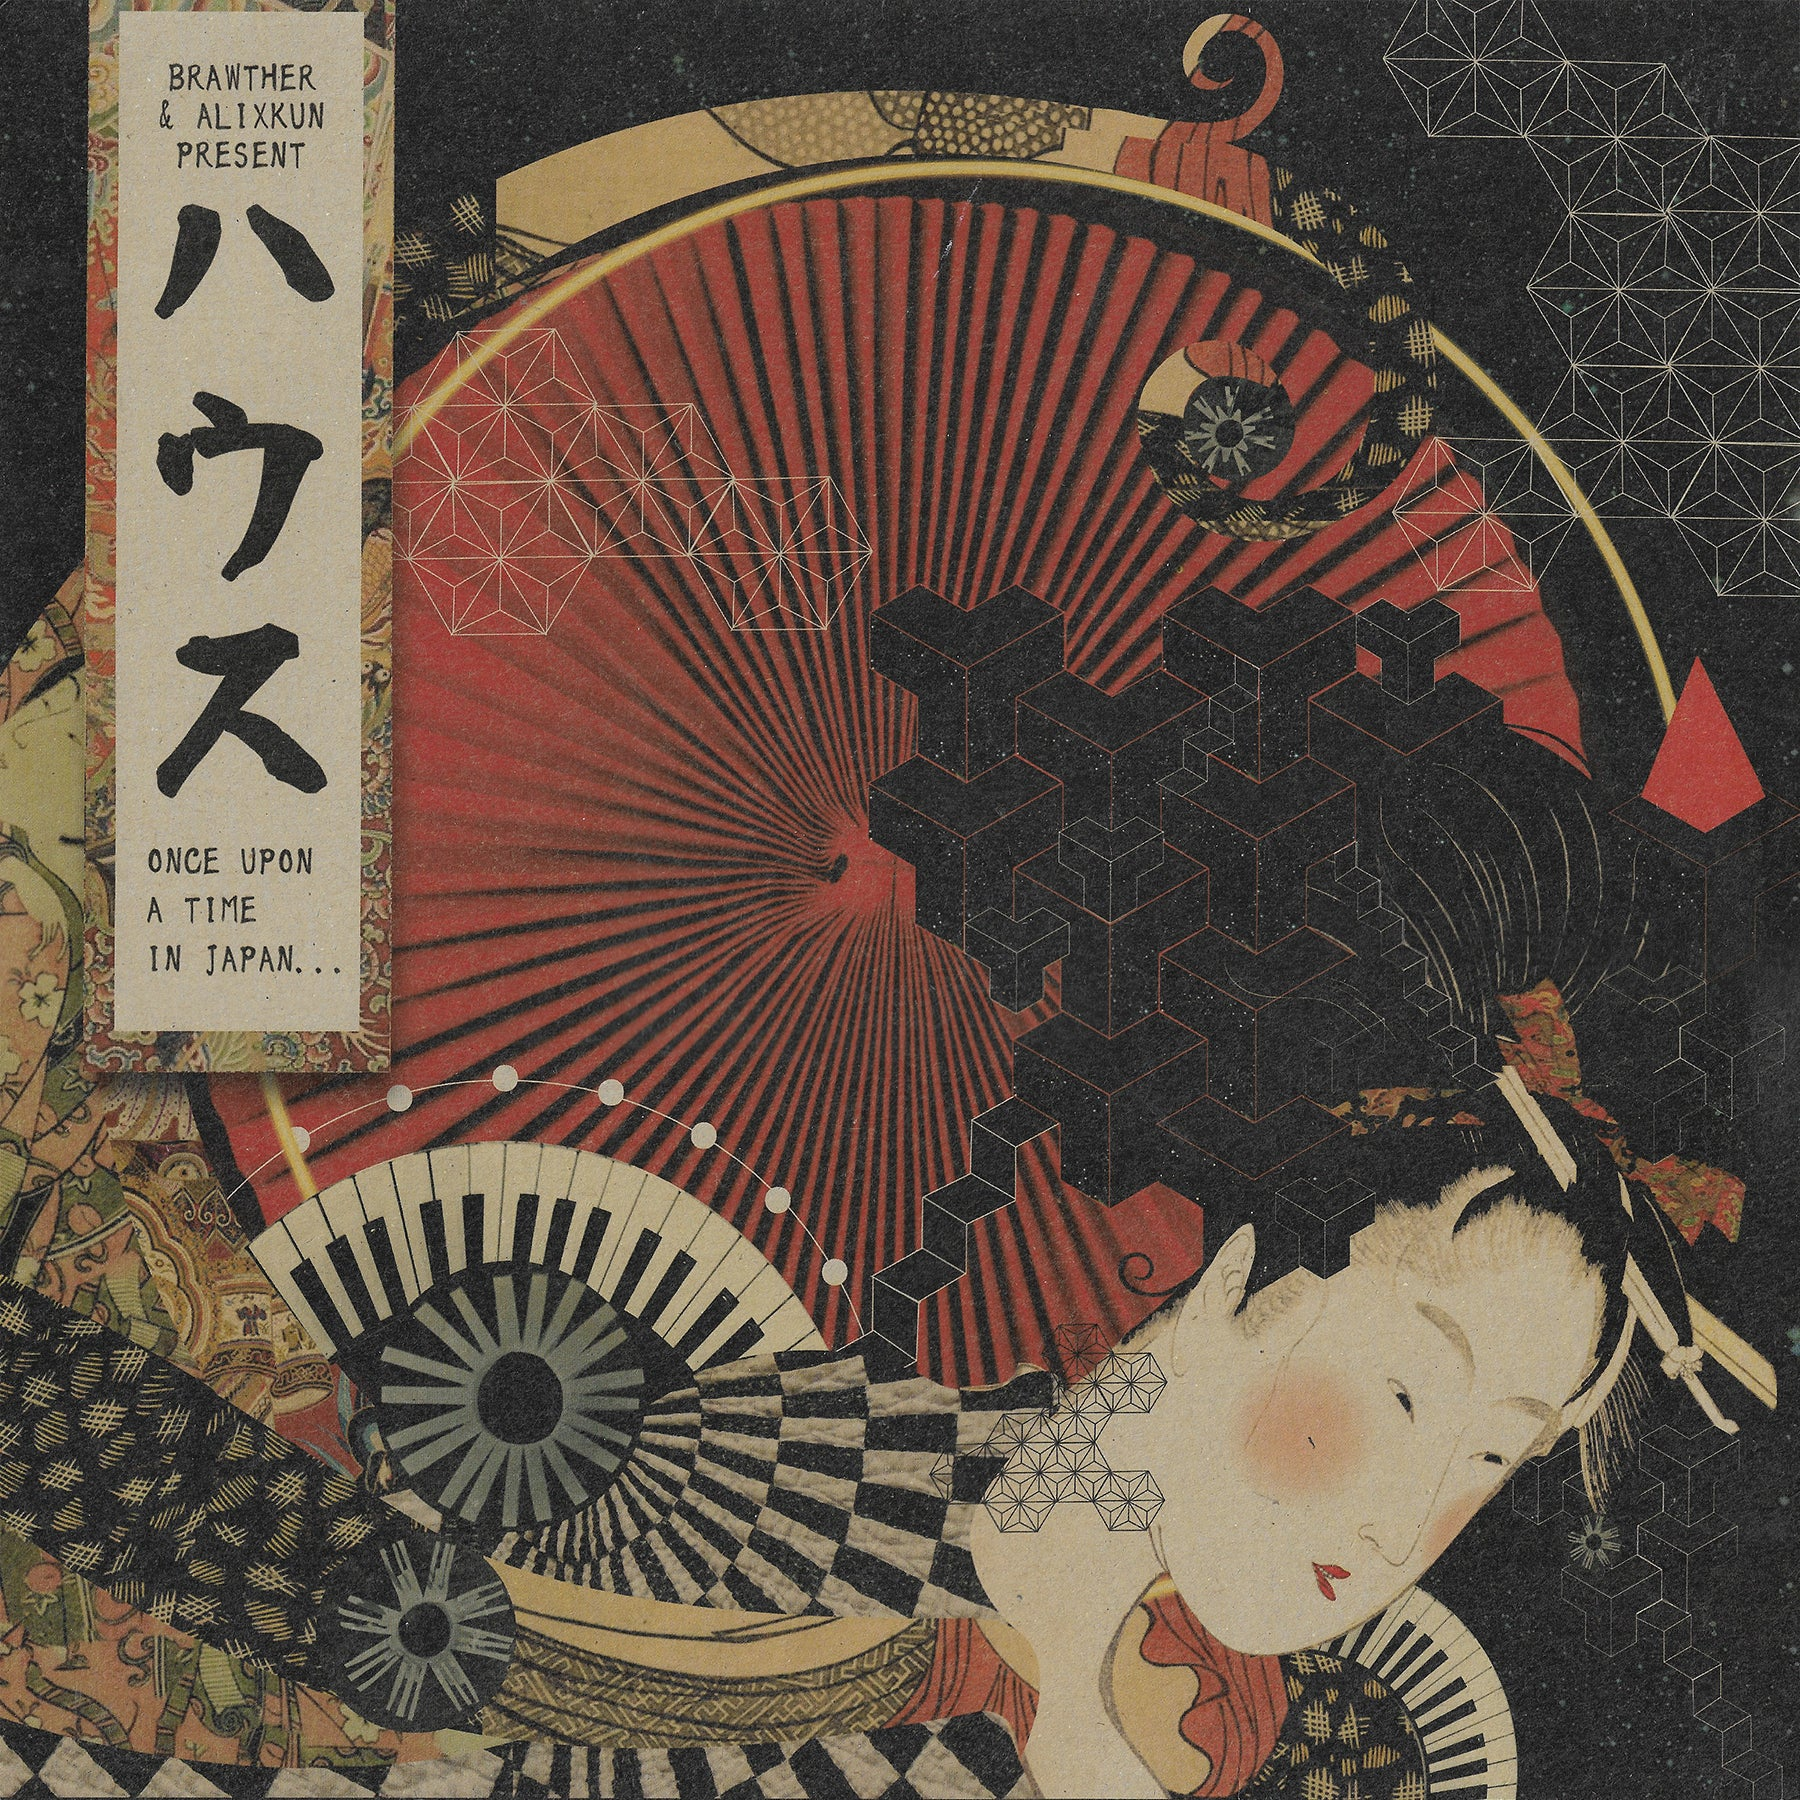 Brawther & Alixkun - ハウス Once Upon A Time In Japan...